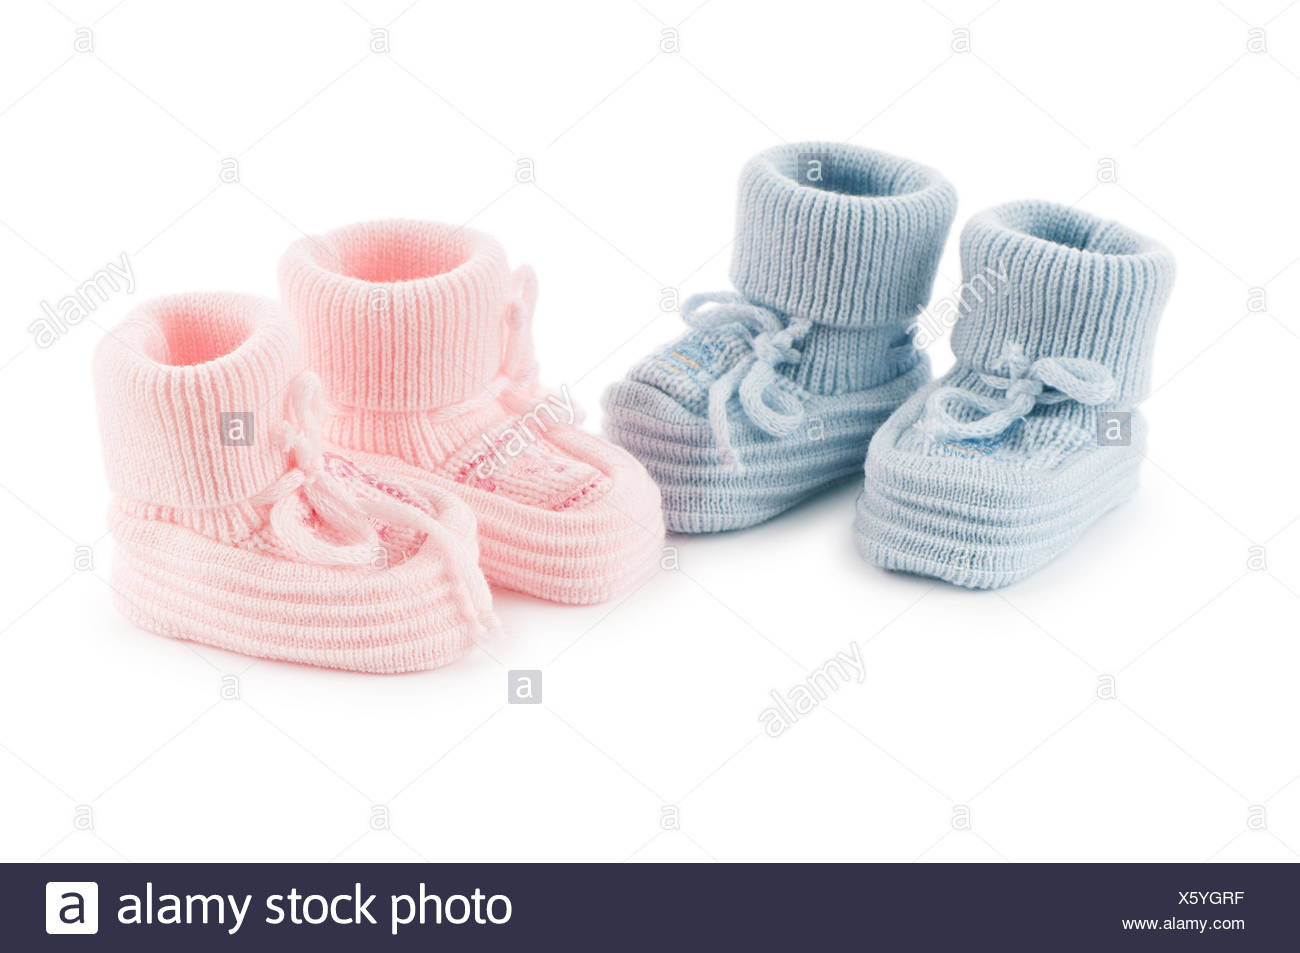 boot blue sport sports isolated fashion born colour new shoes small tiny little short baby foot feet gift gear clothes clothing - Stock Image